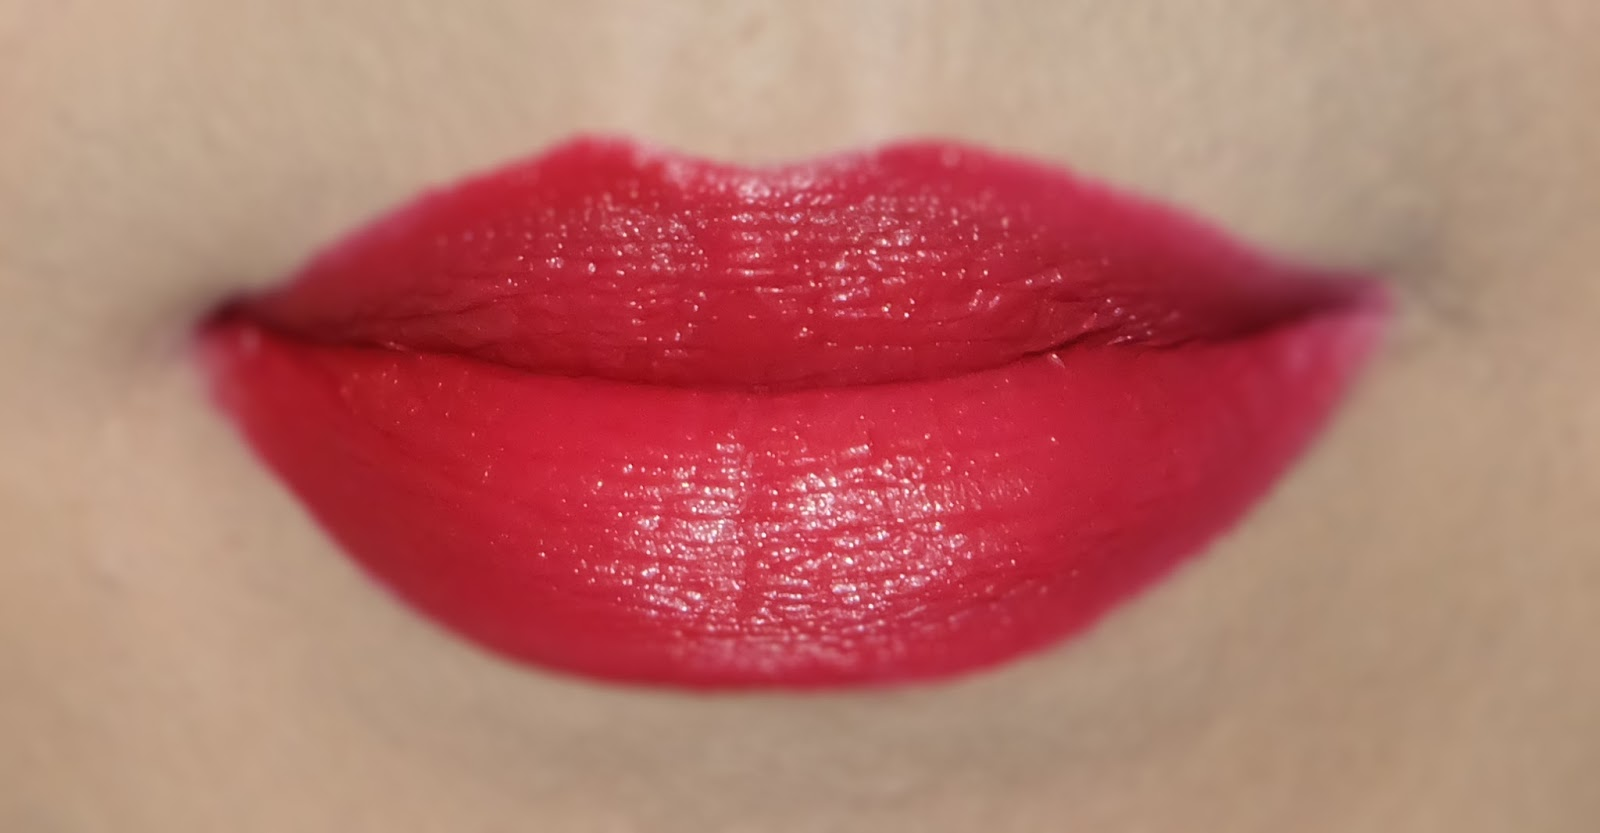 Swatch of Bobbi Brown Art Stick in Harlow Red best lipstick product review